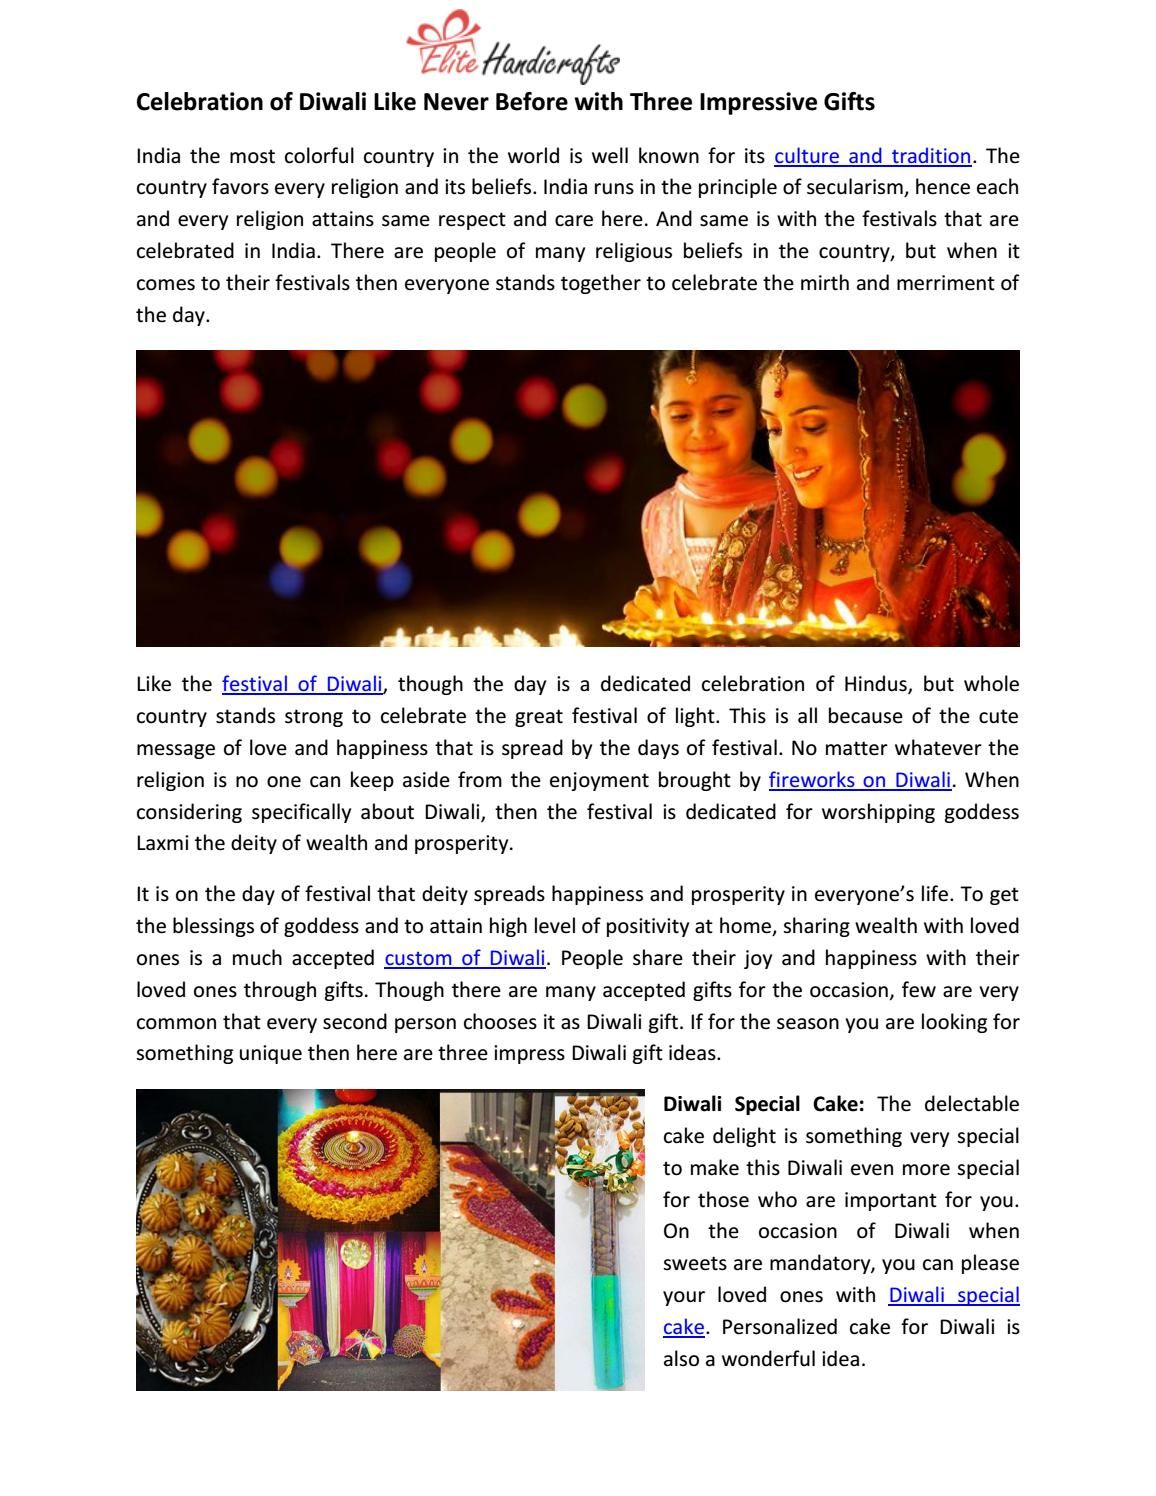 Celebration of diwali like never before with three impressive gifts ...